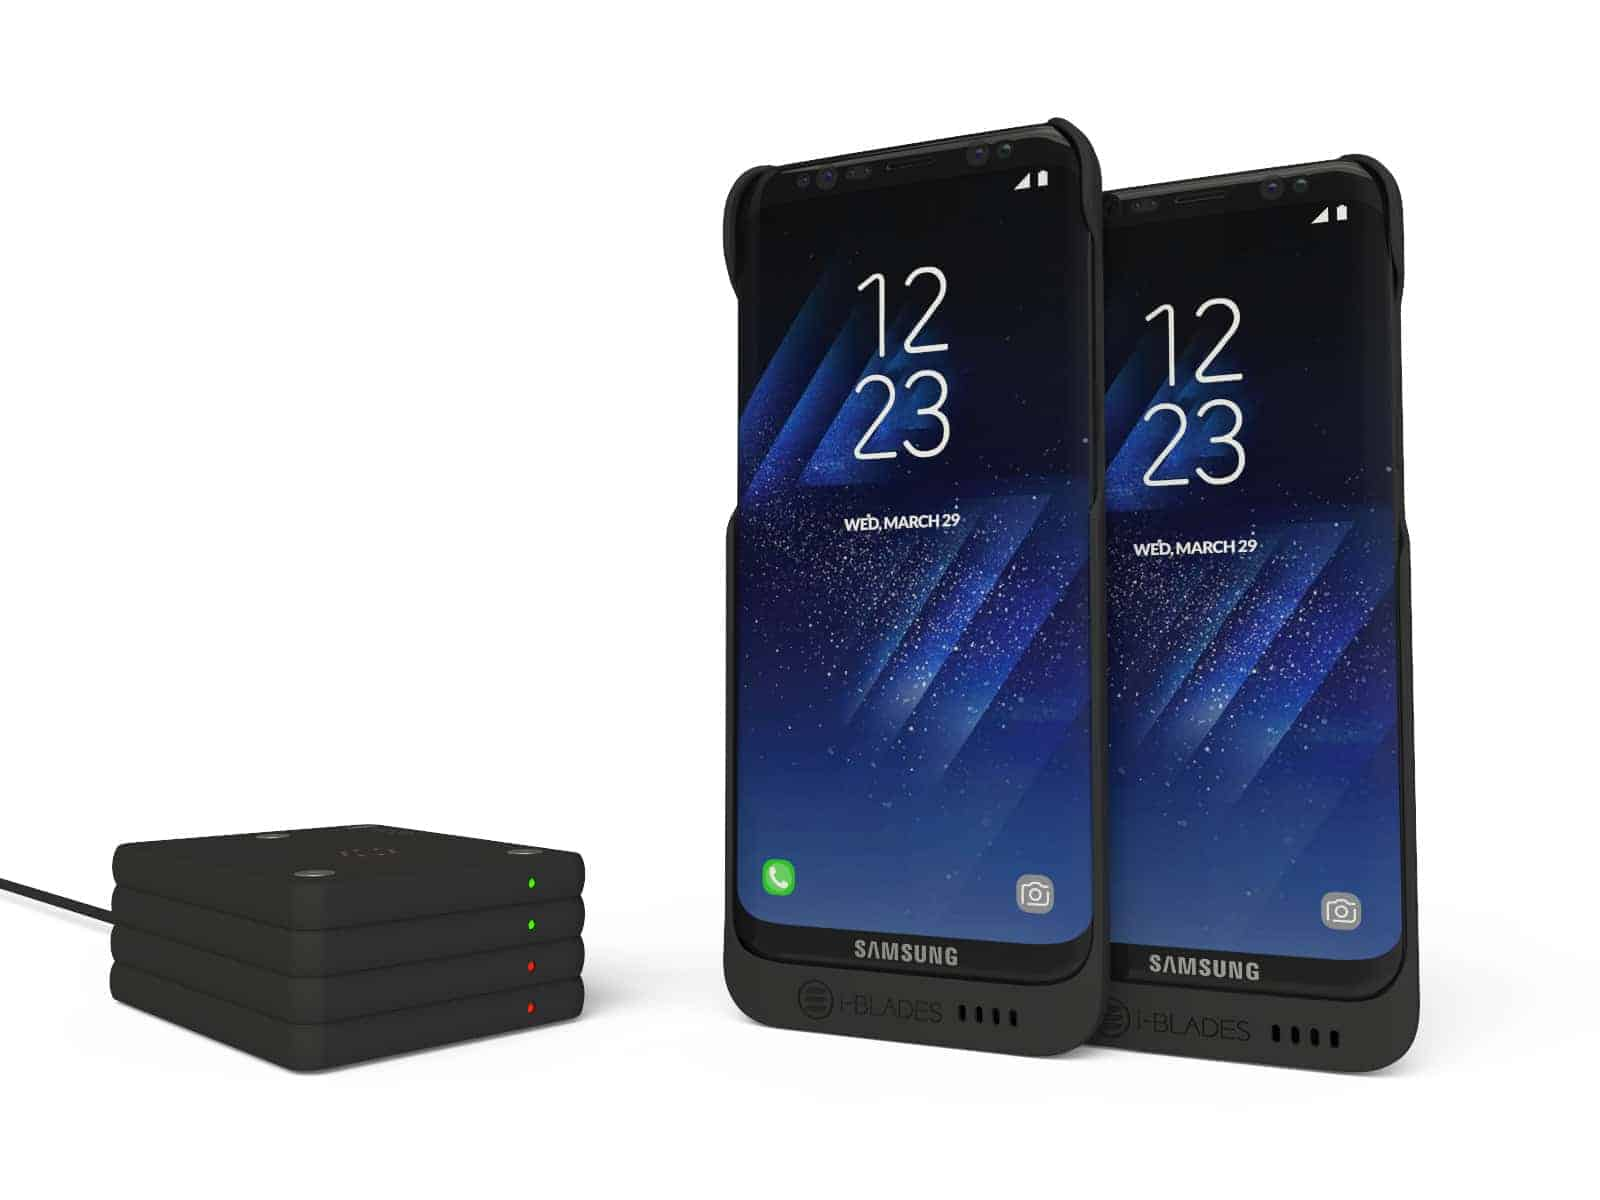 i BLADES Galaxy S8 and GalaxyS8 Plus Smartcases 3